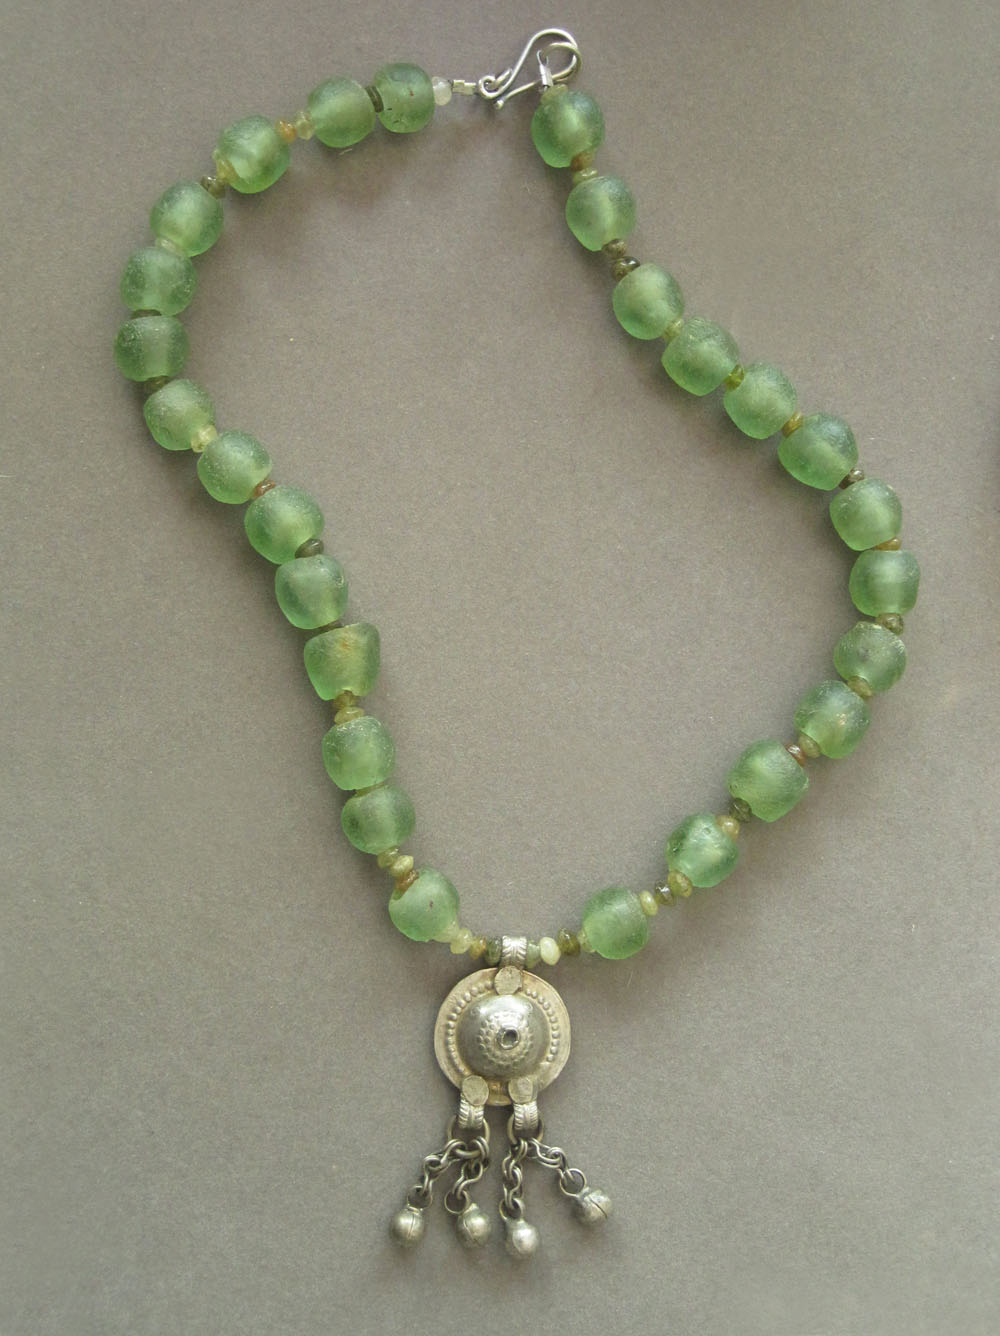 Krobo recycled glass beads (Ghana), green garnet, antique silver pendant (Afghanistan).